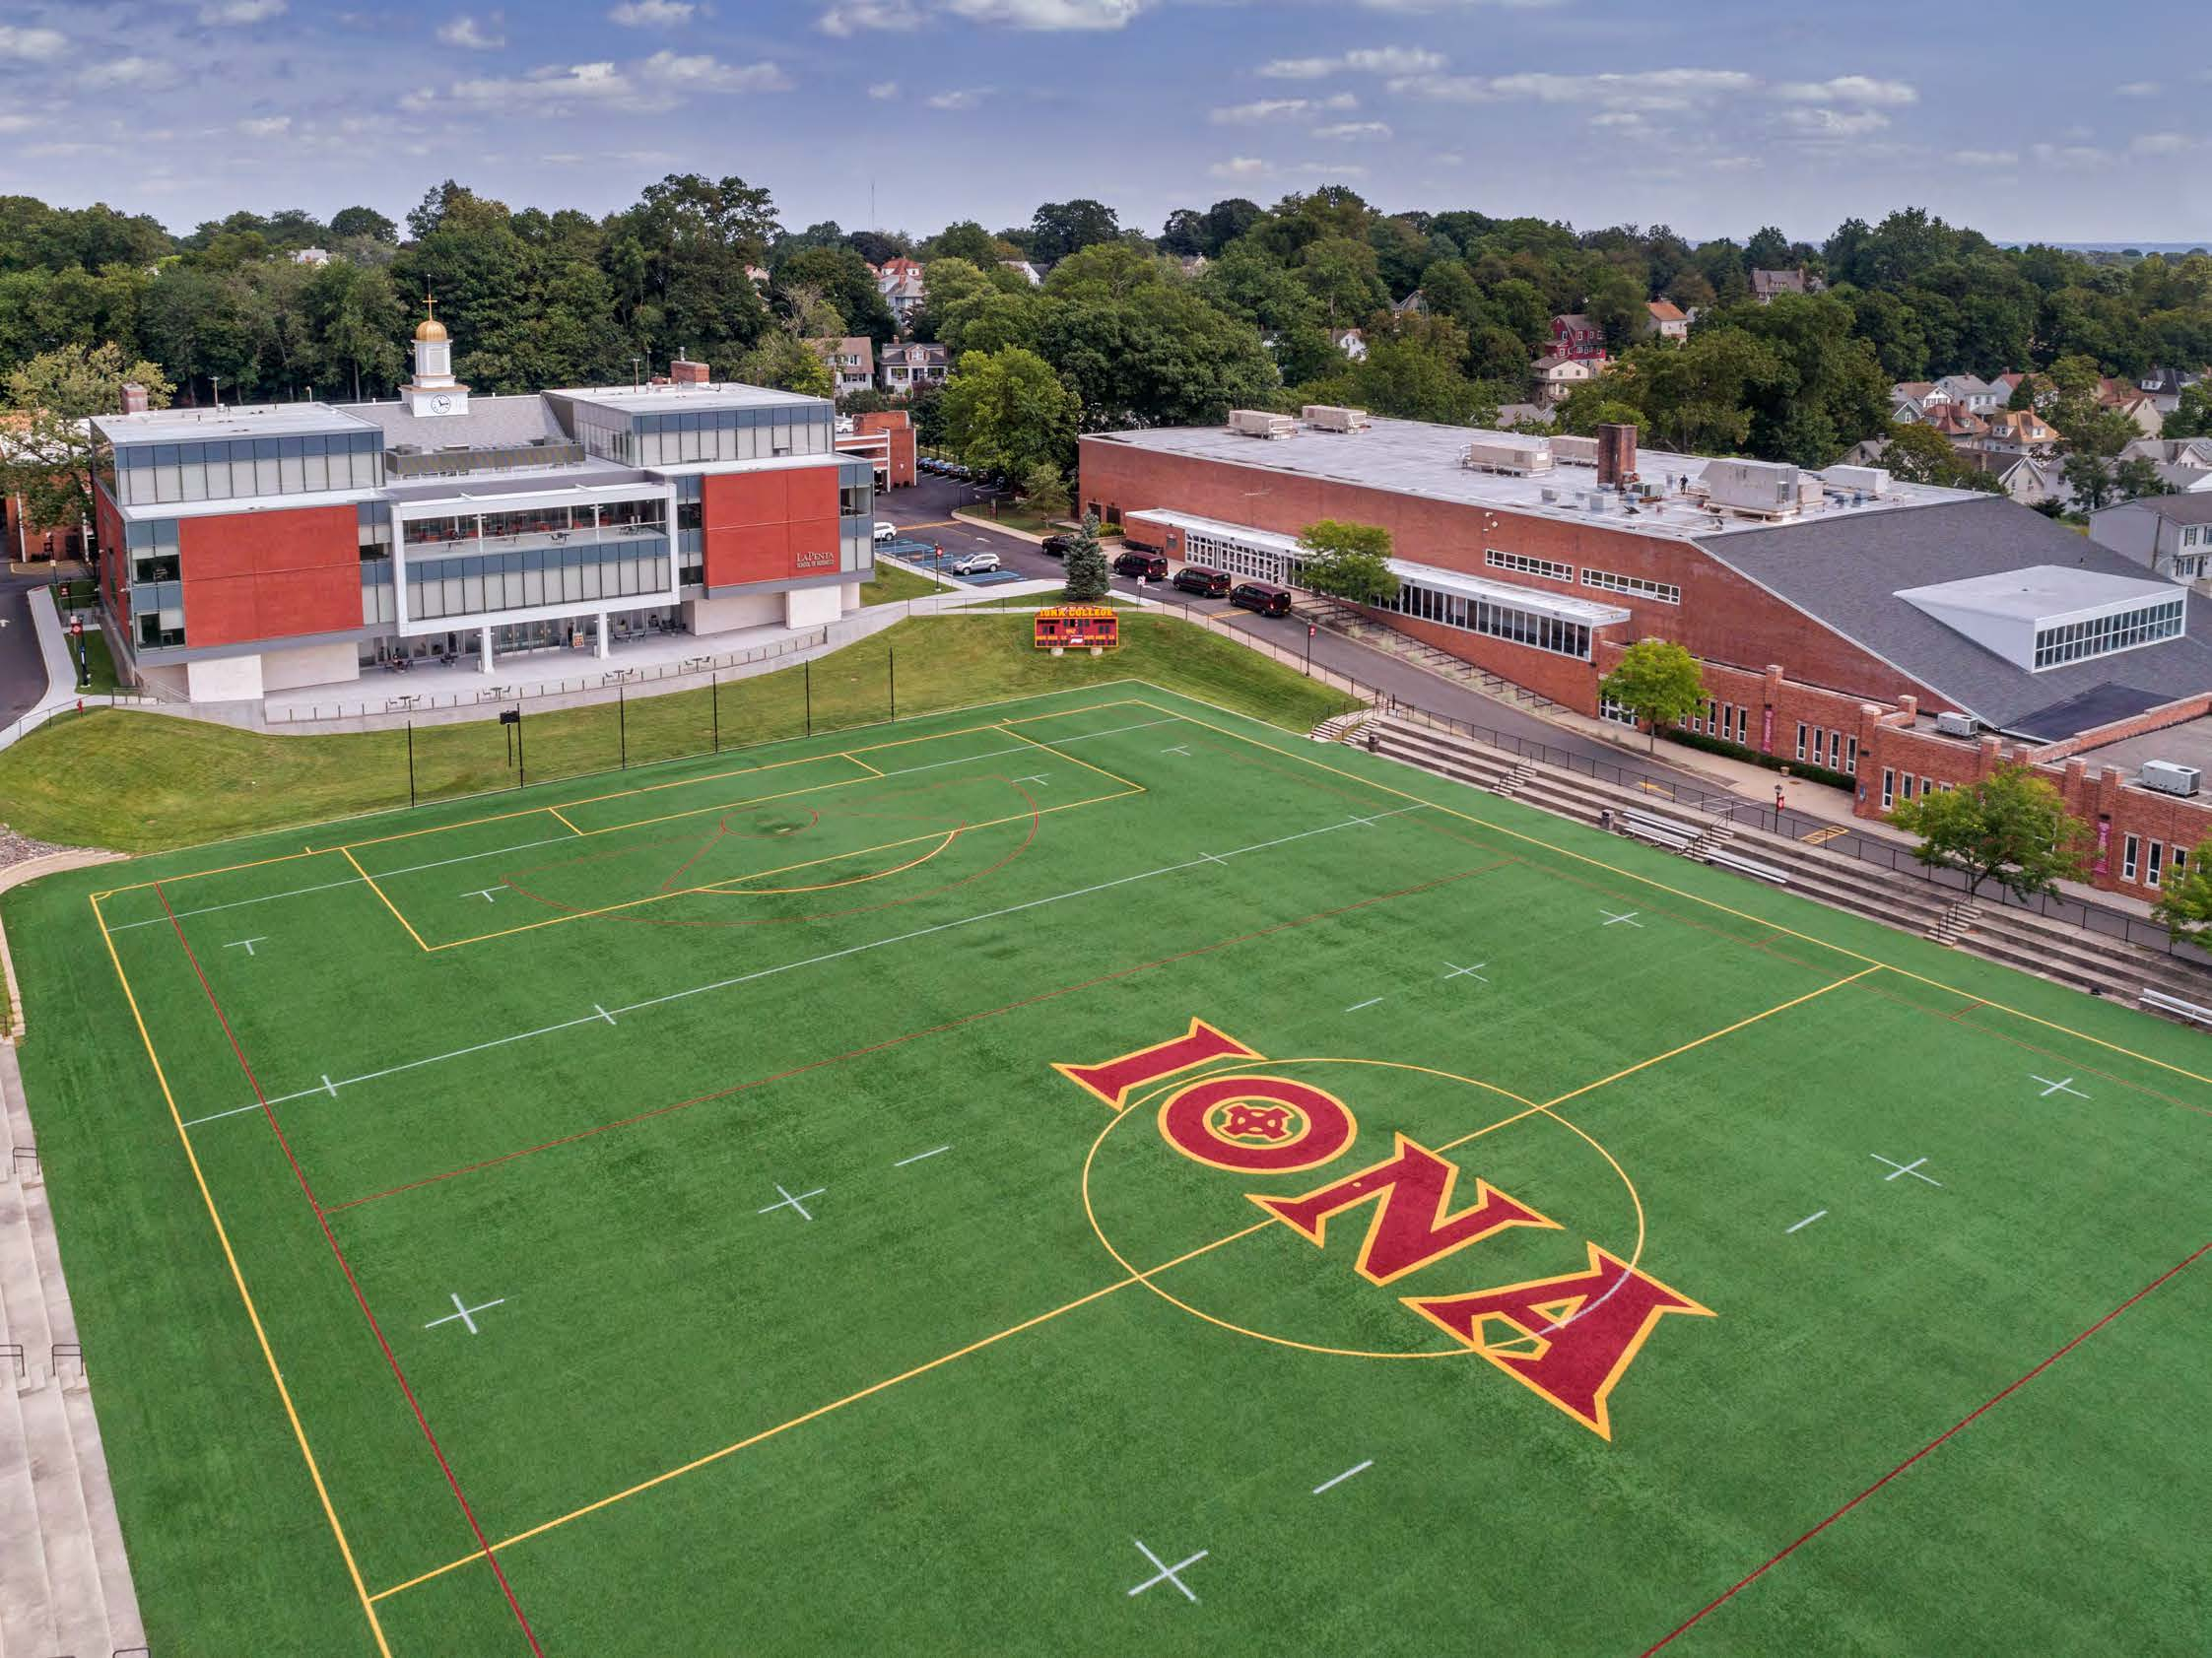 Aerial view of Mazzella Field at Iona College.